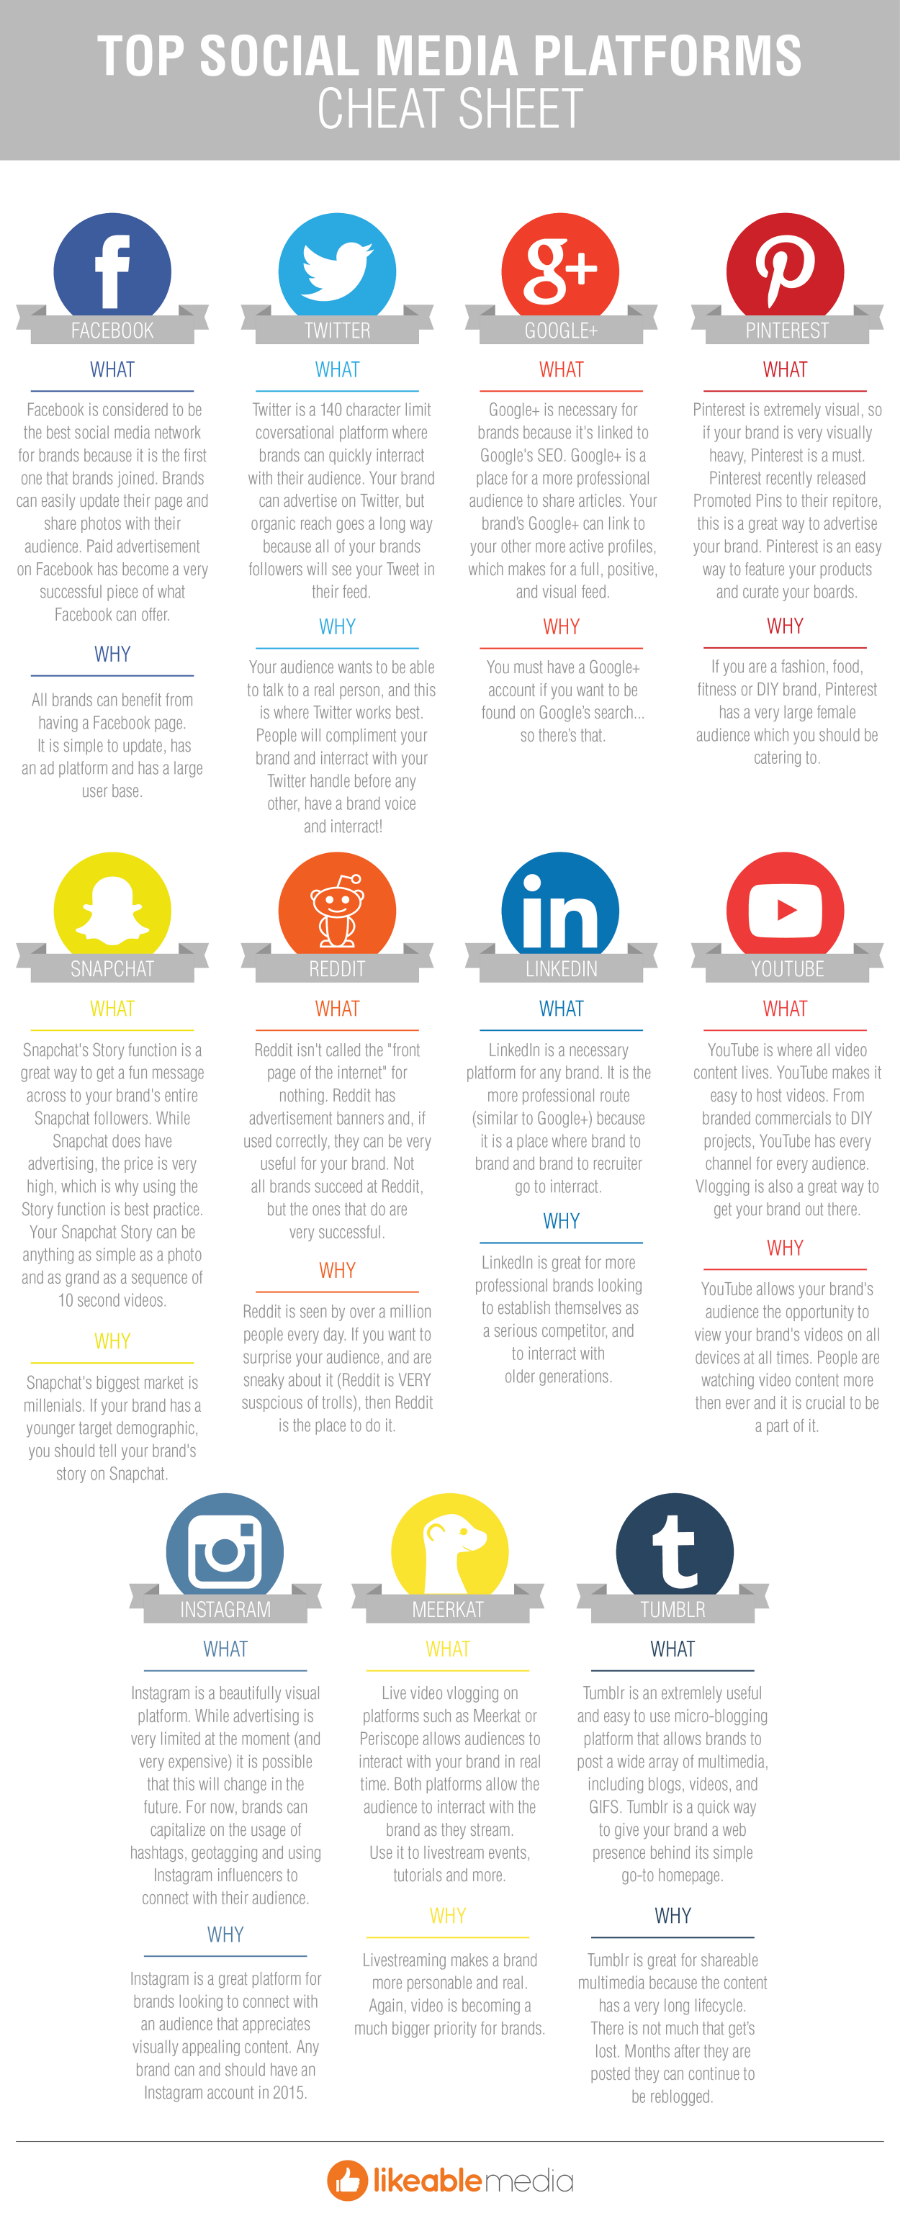 Top Social Media Platforms Cheat Sheet [Infographic]